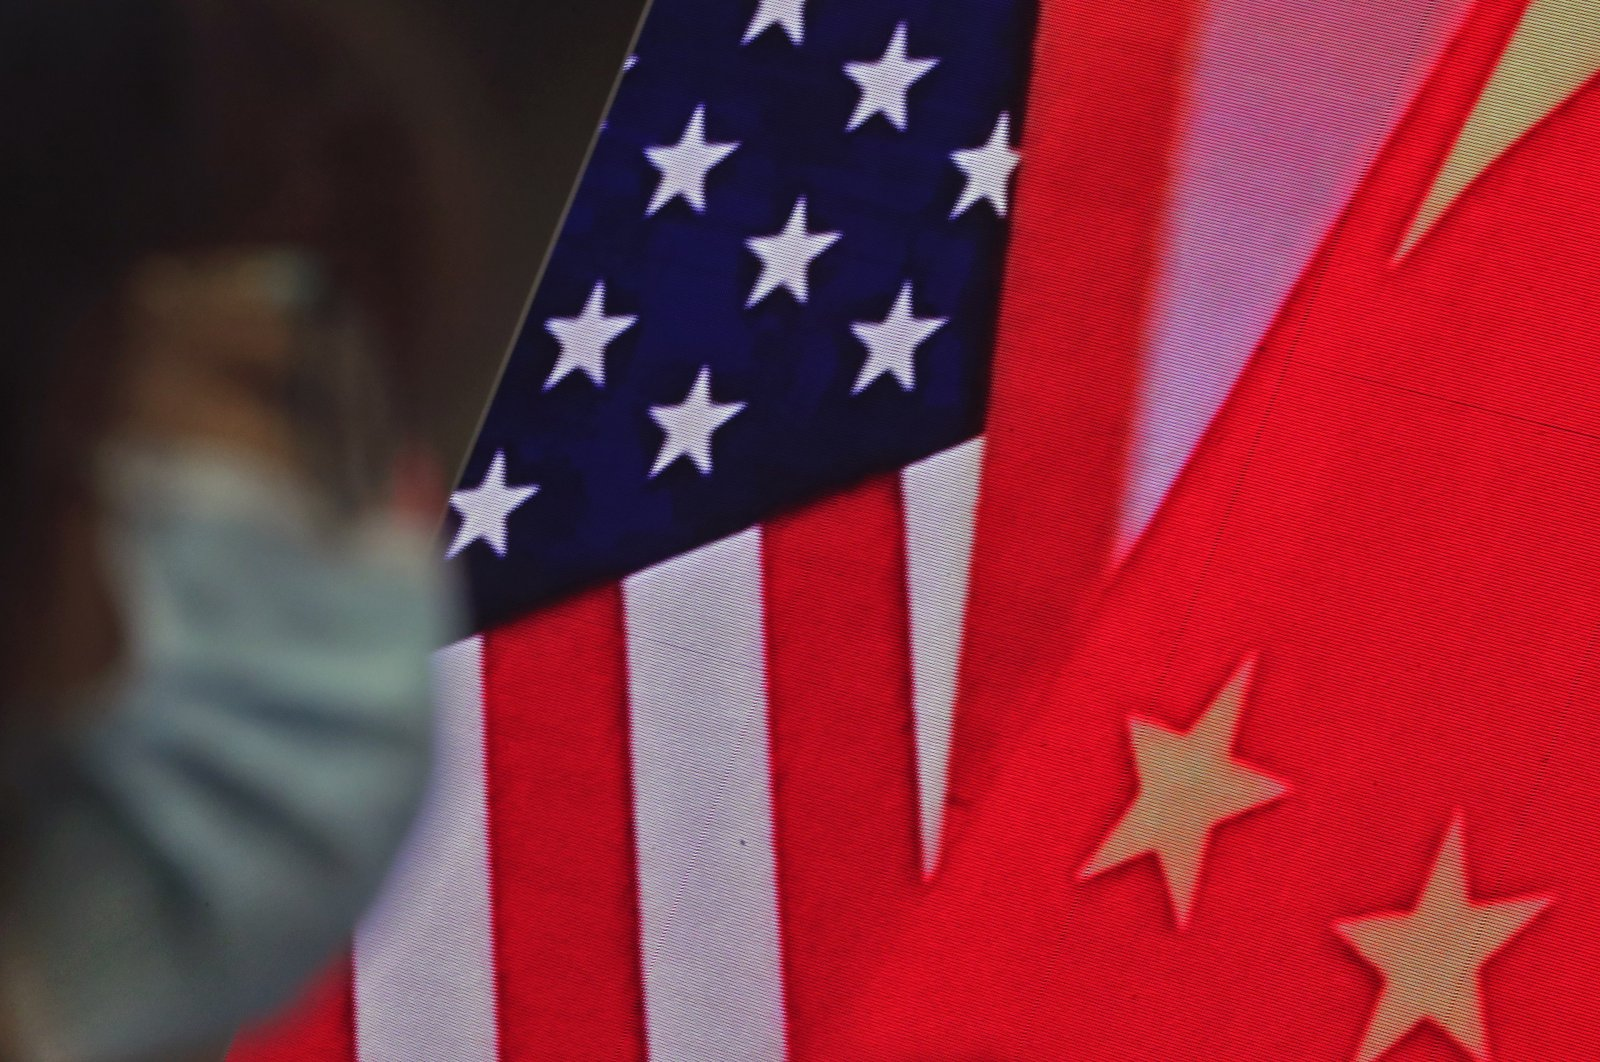 A woman wearing a face mask sits near a screen showing China and U.S. flags at the Ministry of Foreign Affairs office in Beijing, China, Feb. 22, 2021. (AP Photo)